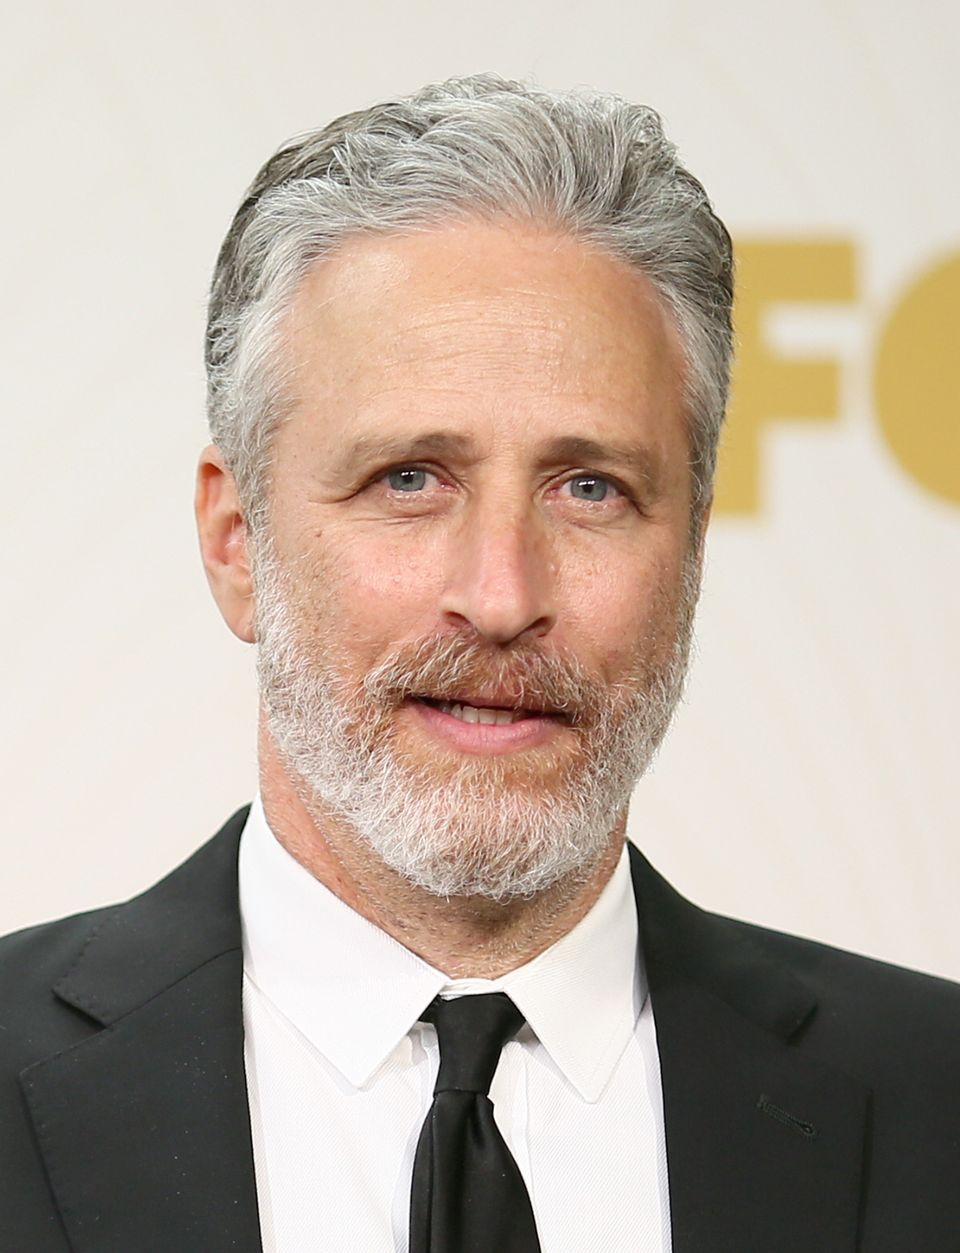 Stewart, now known for being comedy's hottest silver fox, wasn't always gray. He actually used to have a head chock full of t